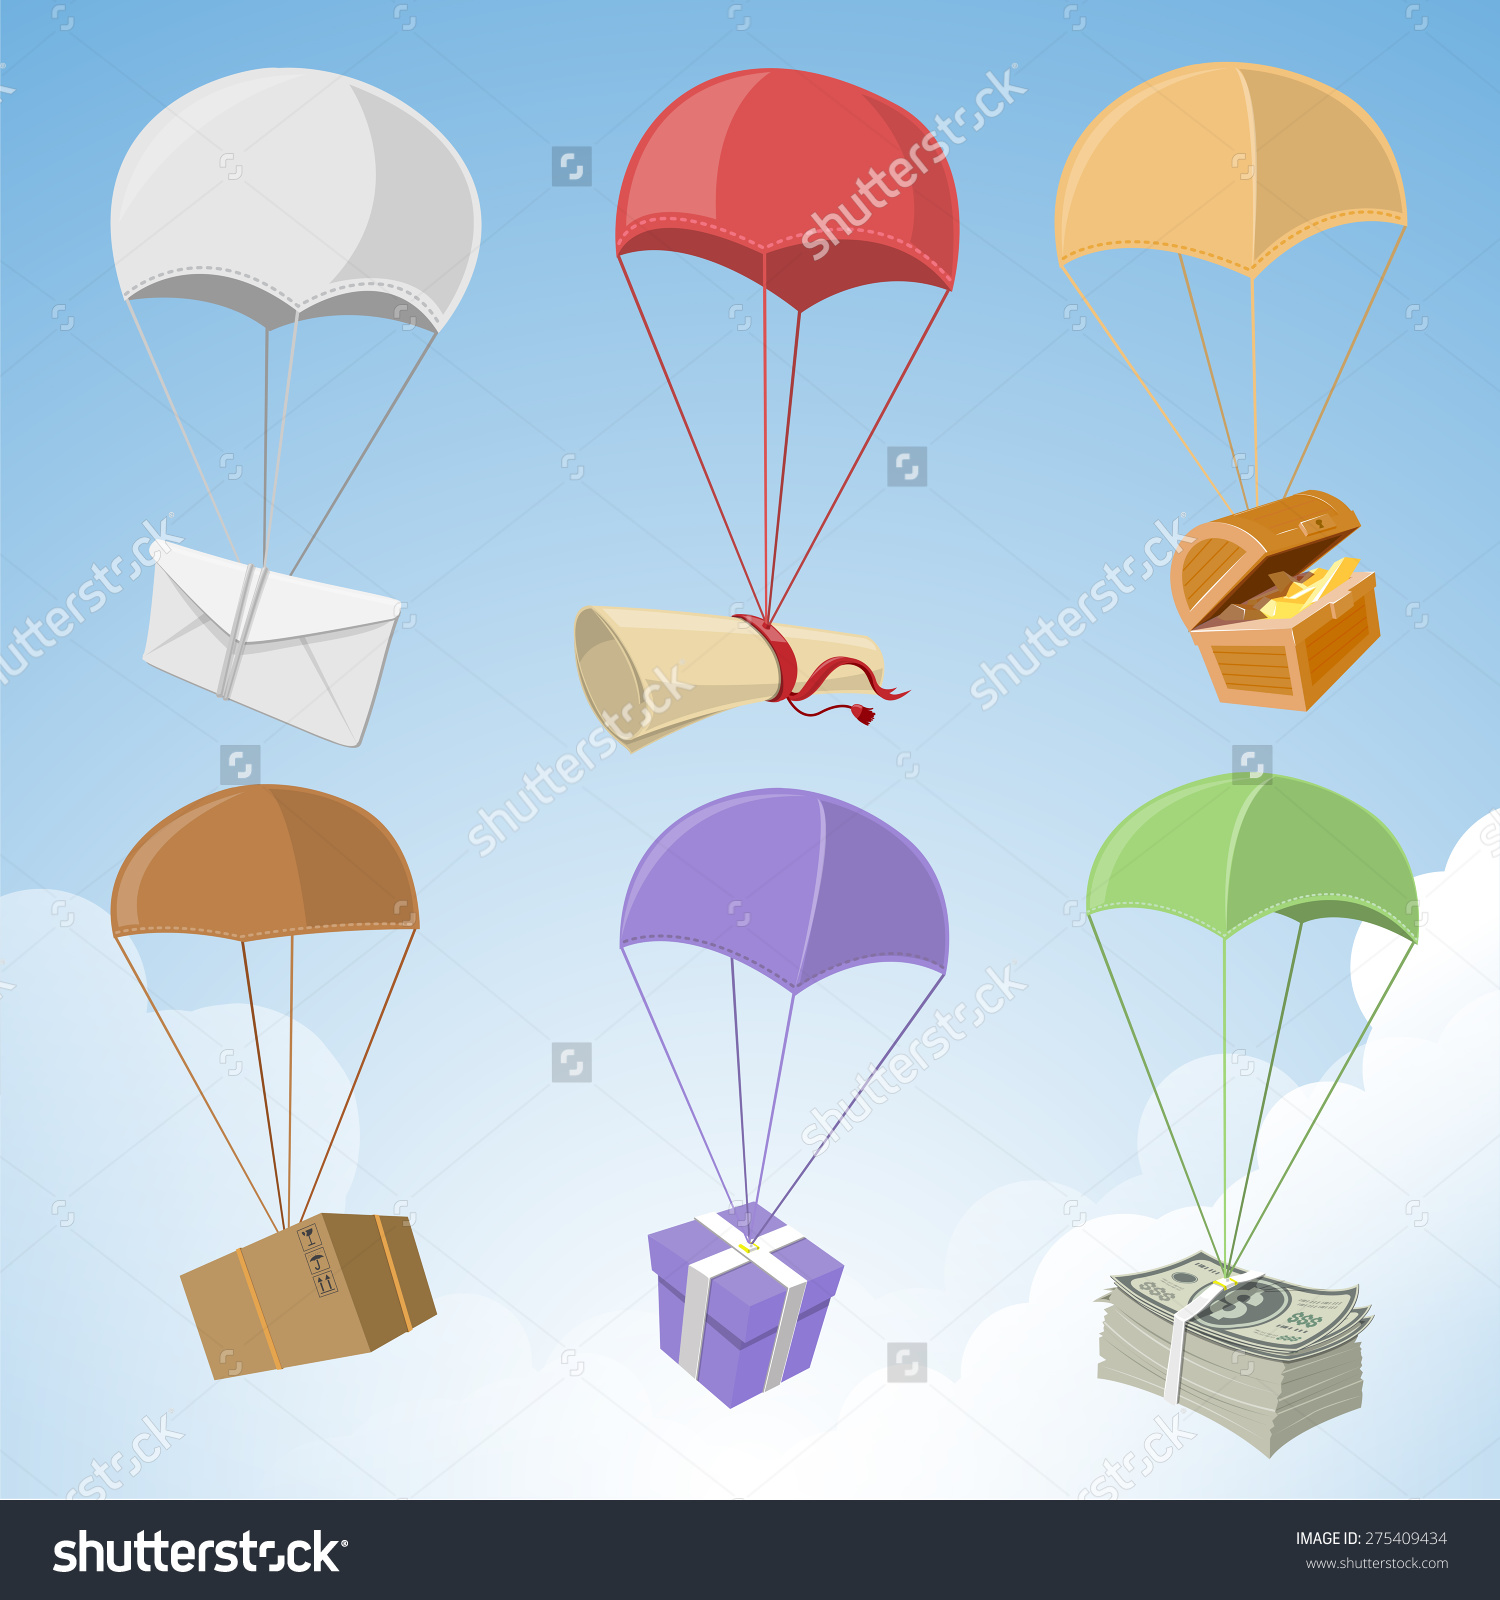 Airdrop Supplies Equipment Vector Illustration Stock Vector.